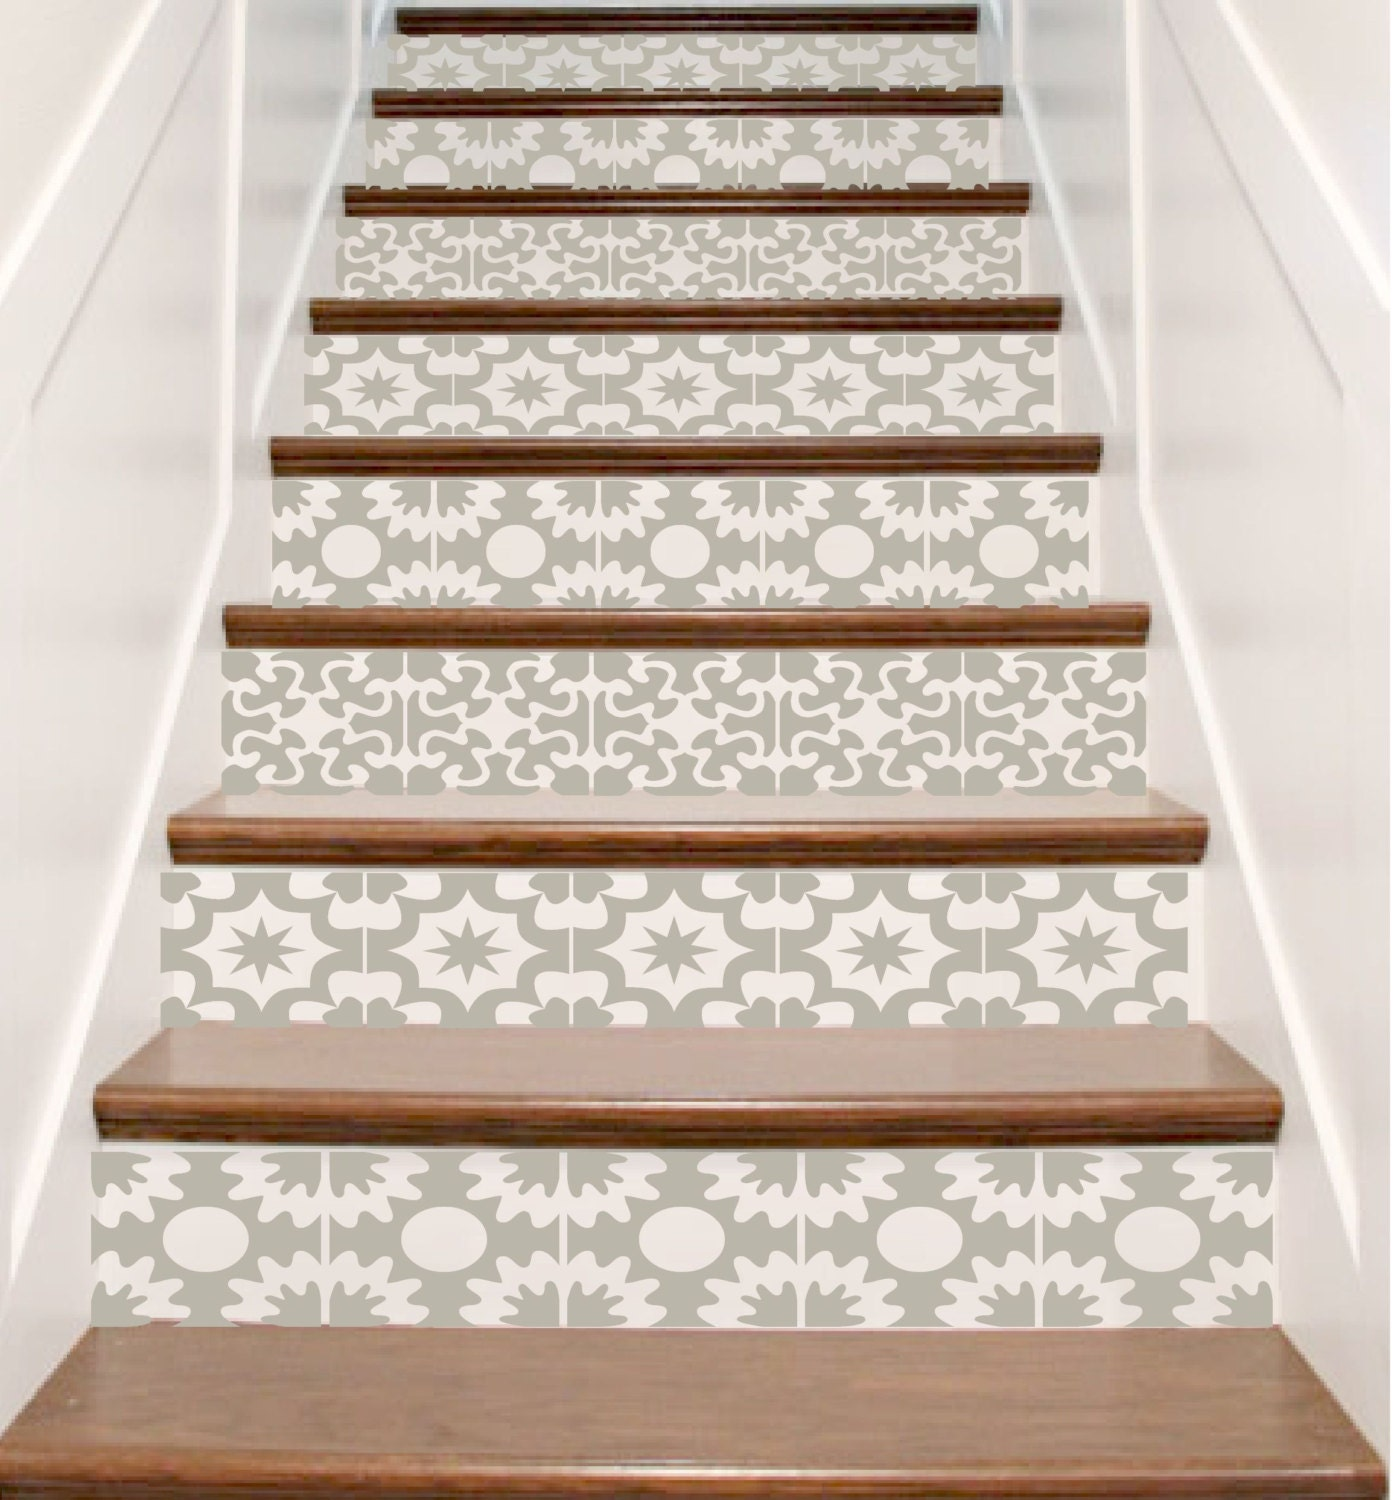 Vinyl stair tile decals hacienda spanish style staircase zoom dailygadgetfo Images